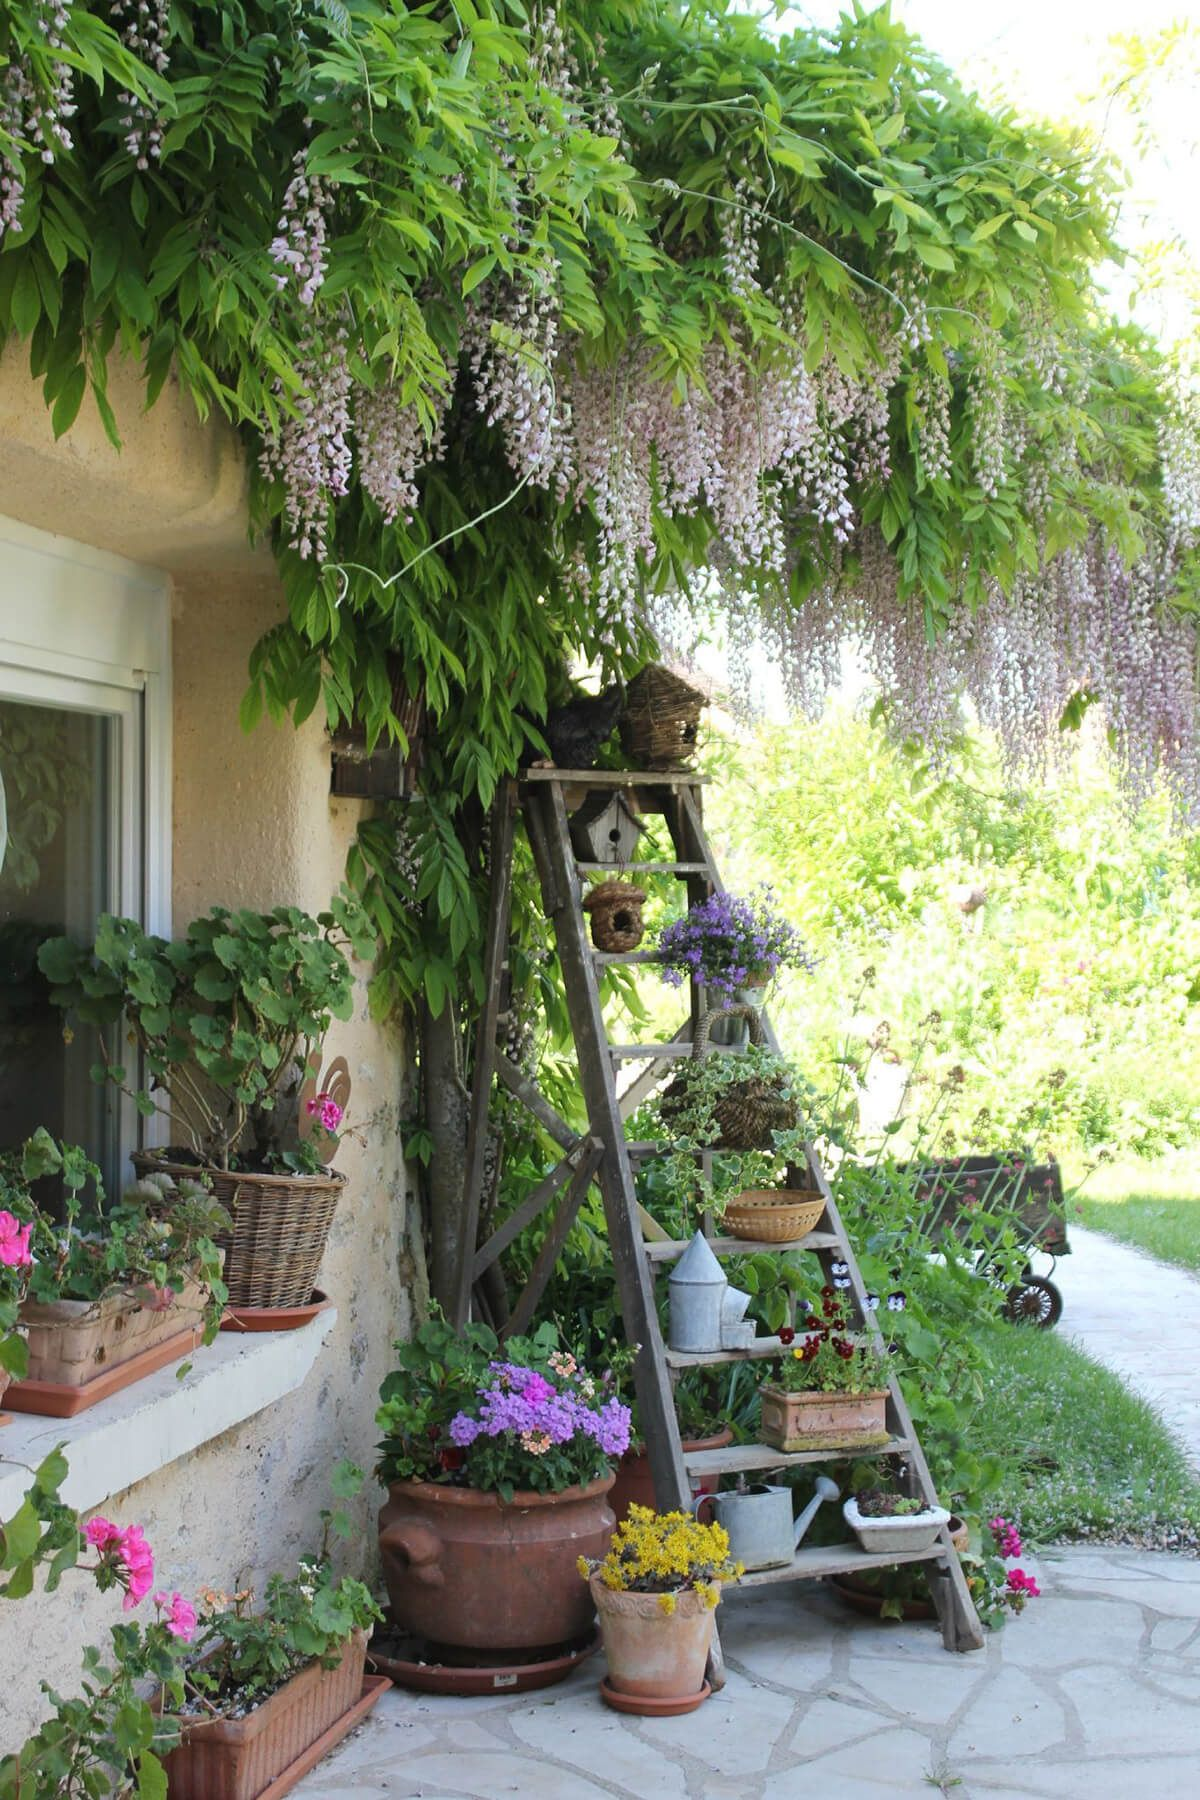 45 Blooming Cottage Style Garden Ideas for a Charming Outdoor Space